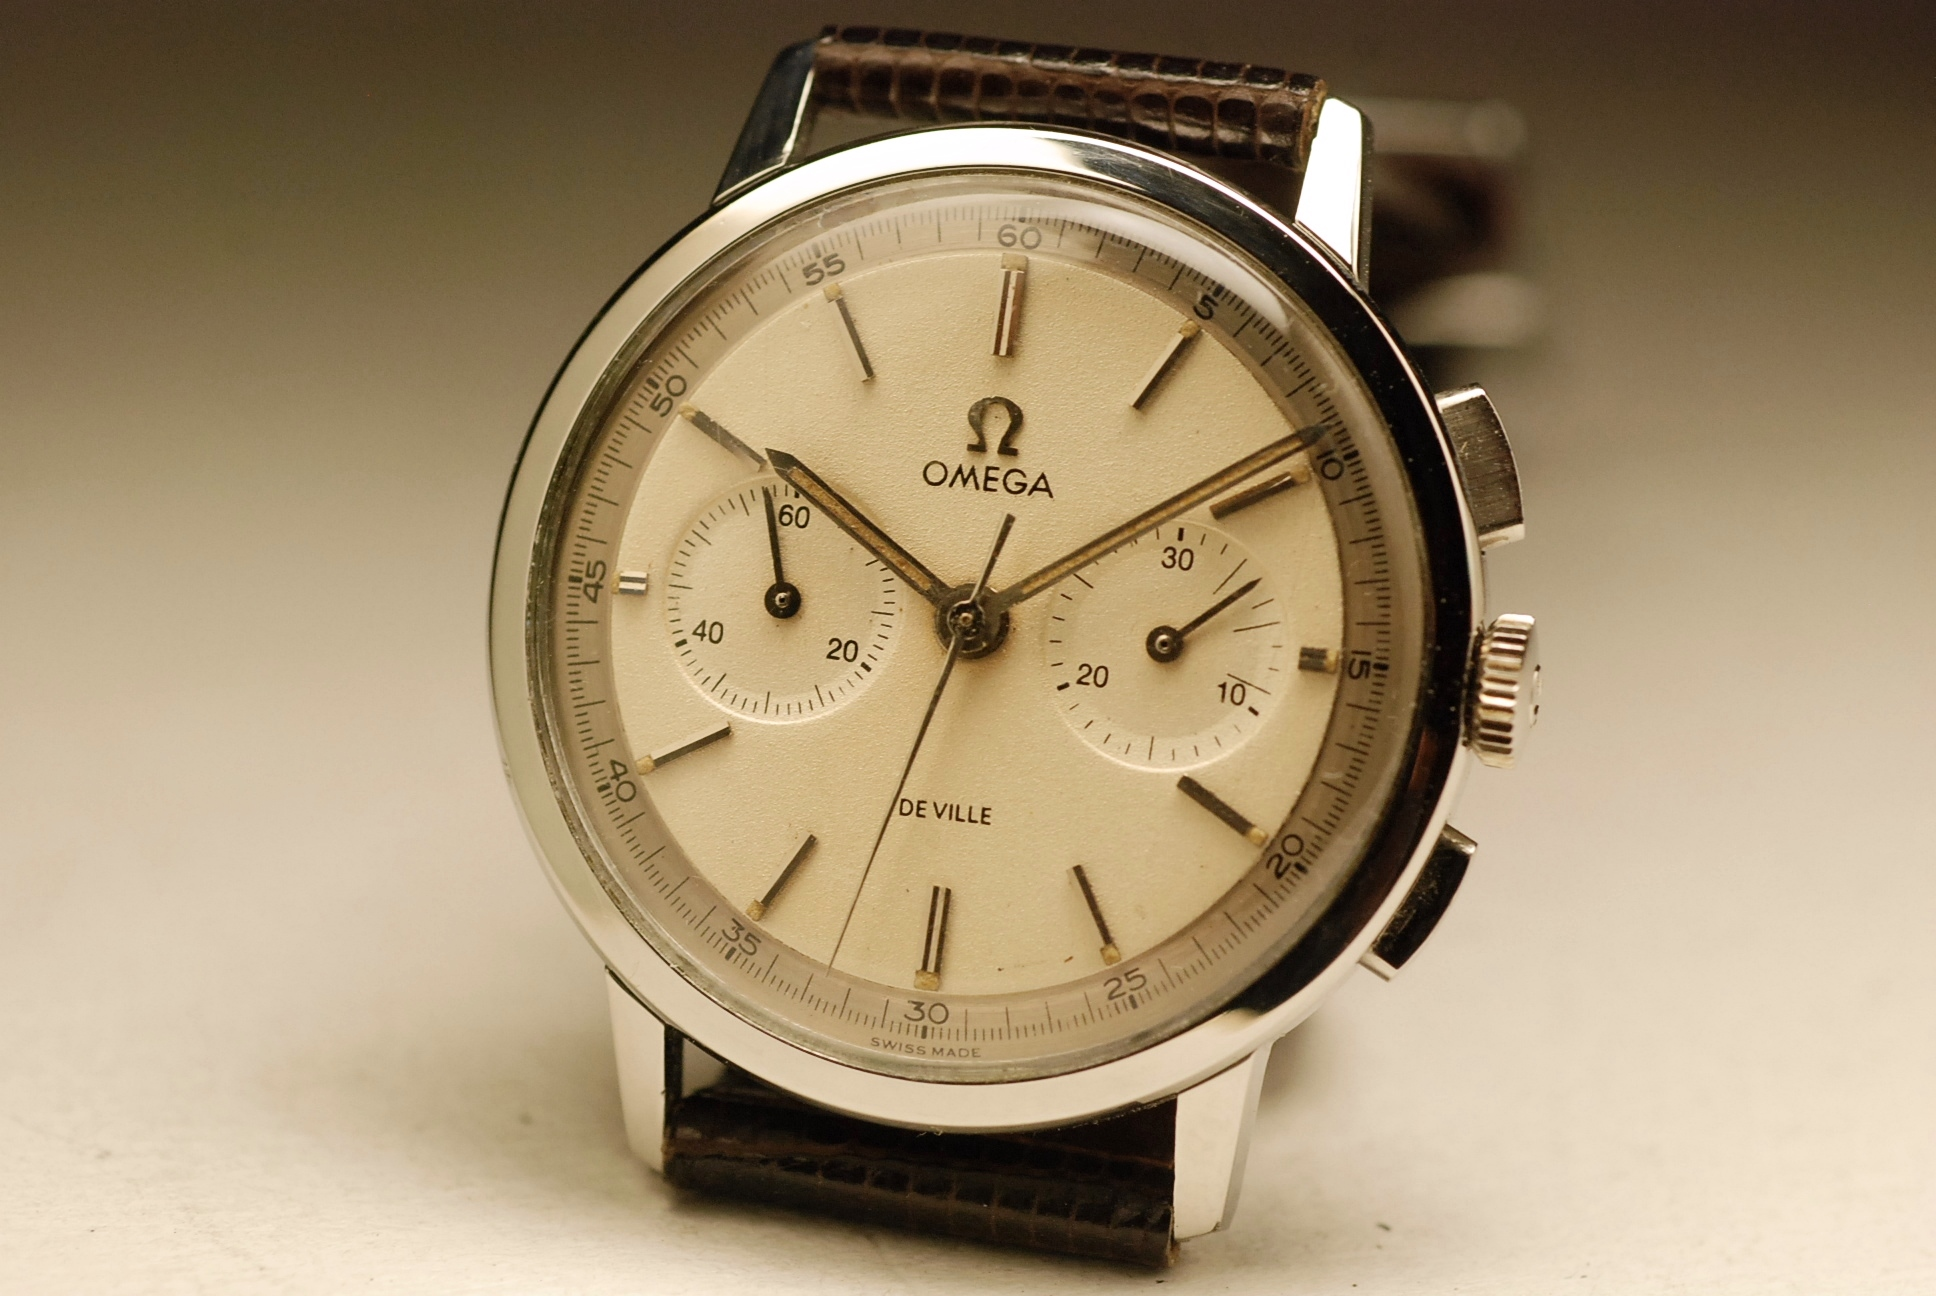 ancienne montre omega chronographe cal 320 acier 1960 vintage watch 35mm steel ebay. Black Bedroom Furniture Sets. Home Design Ideas